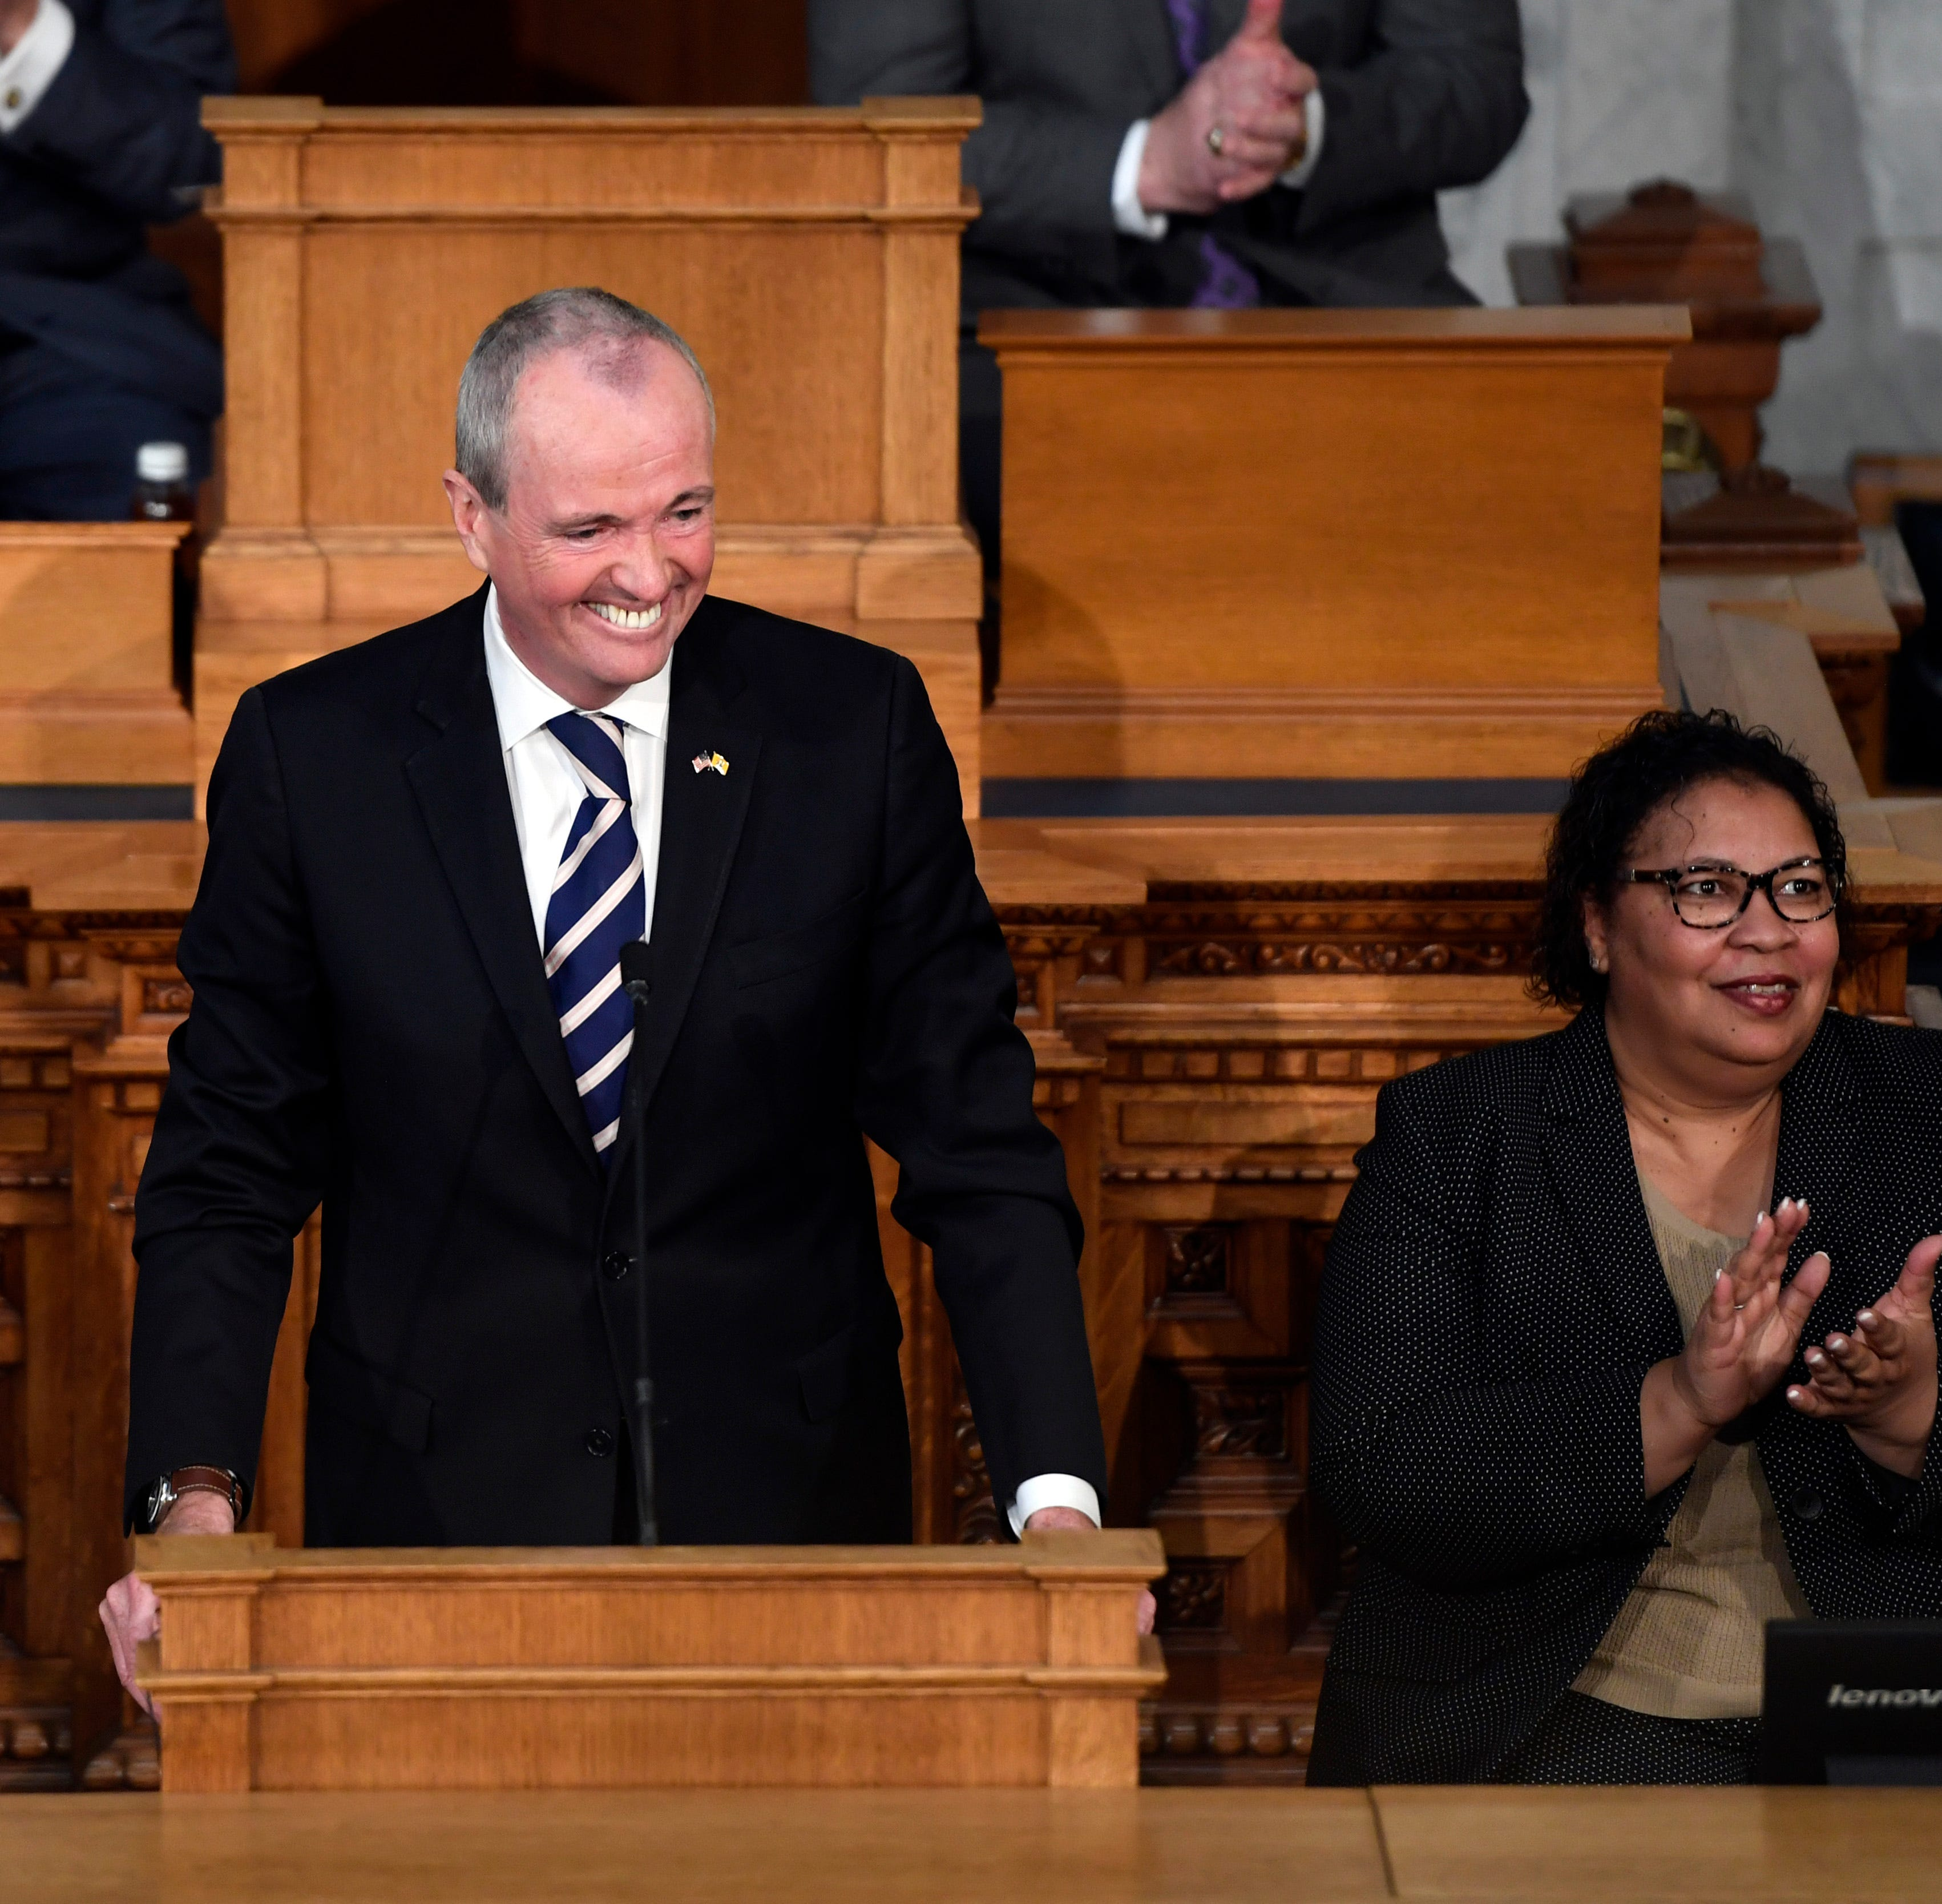 New Jersey Governor Phil Murphy delivers the State of the State address on Tuesday, Jan. 15, 2019, in Trenton.